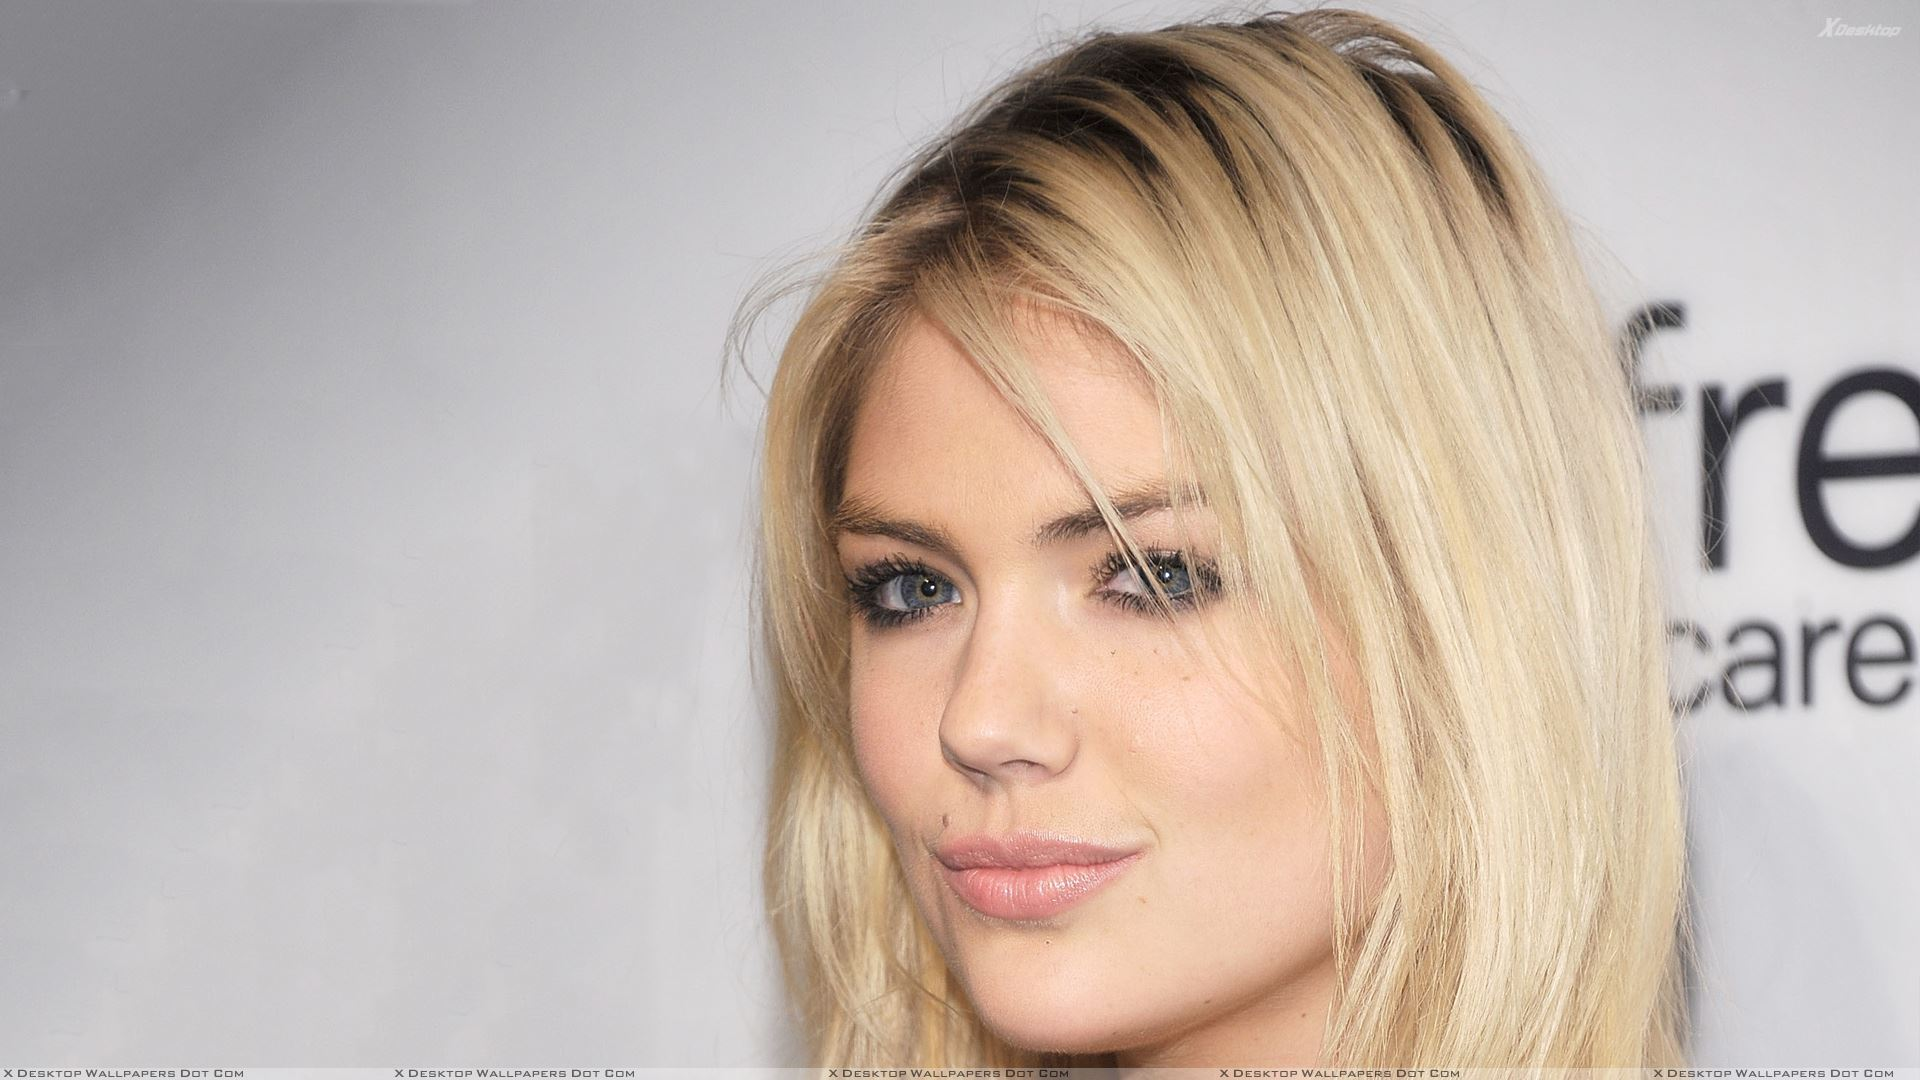 Kate upton wallpapers photos images in hd categories voltagebd Images